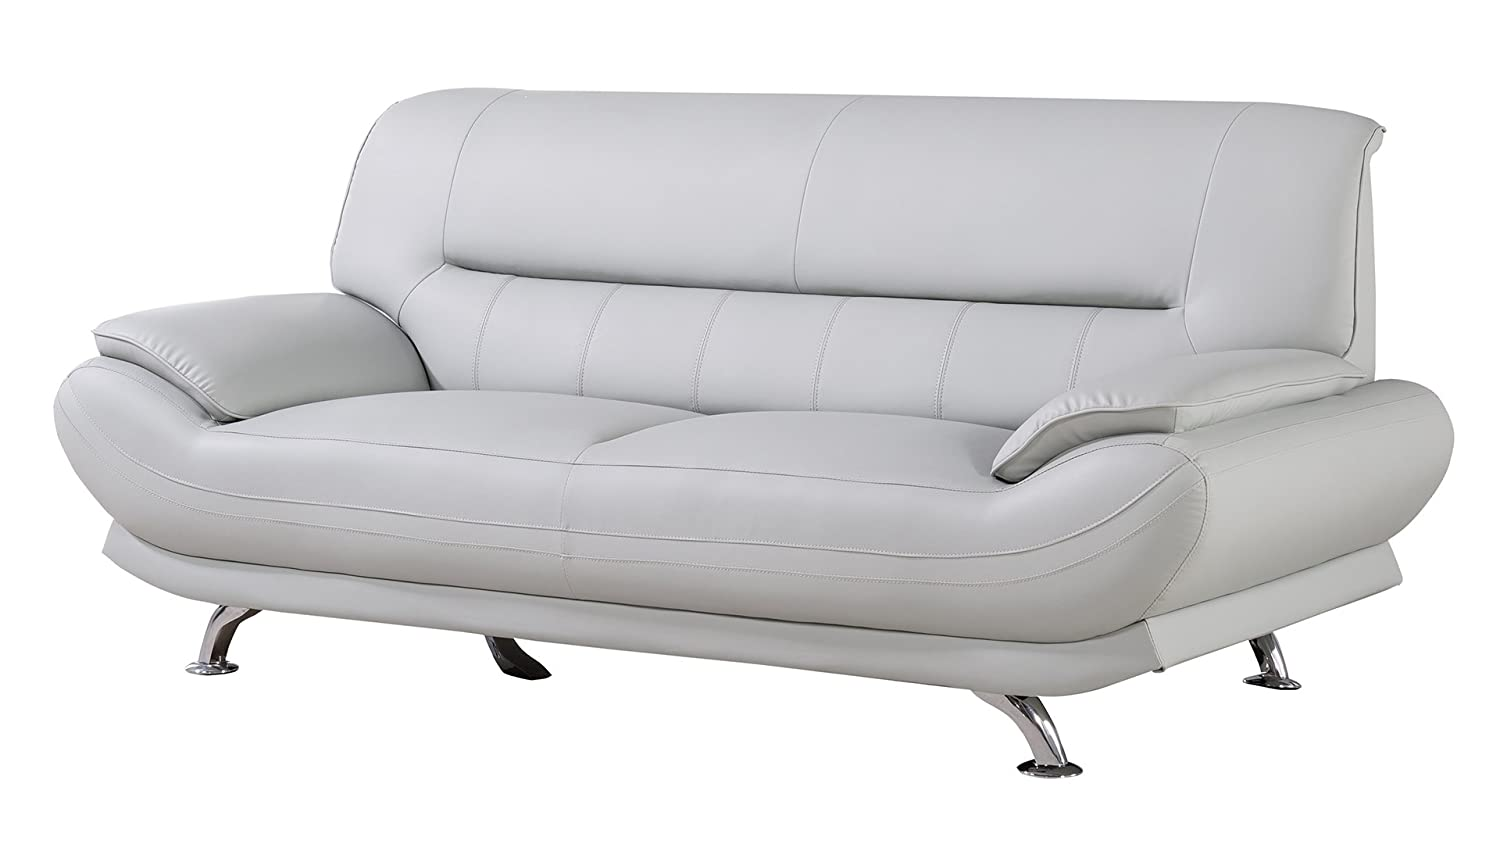 American Eagle Furniture AE709-LG-SF Mason Upholstered Leather Sofa with Added Base Support and Pillow Top Armrest, Light Gray